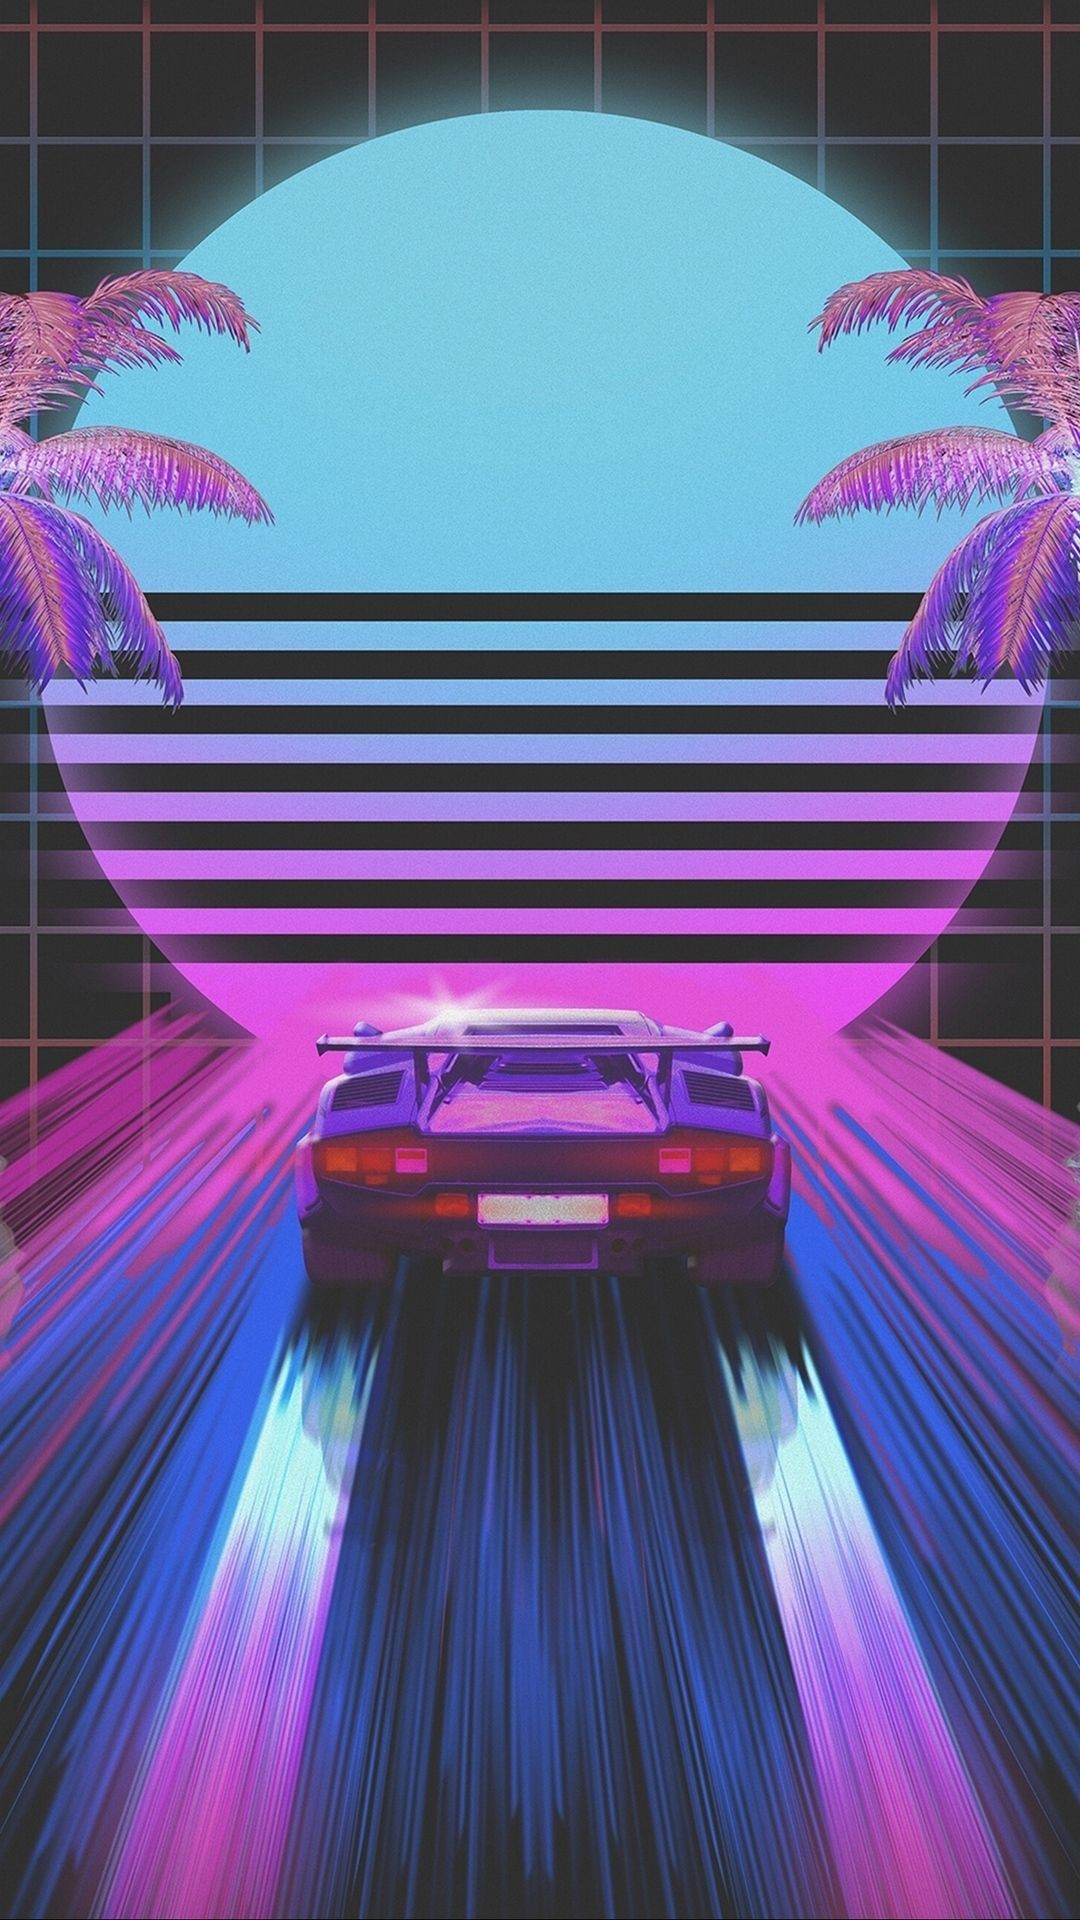 Aesthetic Vaporwave Wallpapers Kolpaper Awesome Free Hd Wallpapers